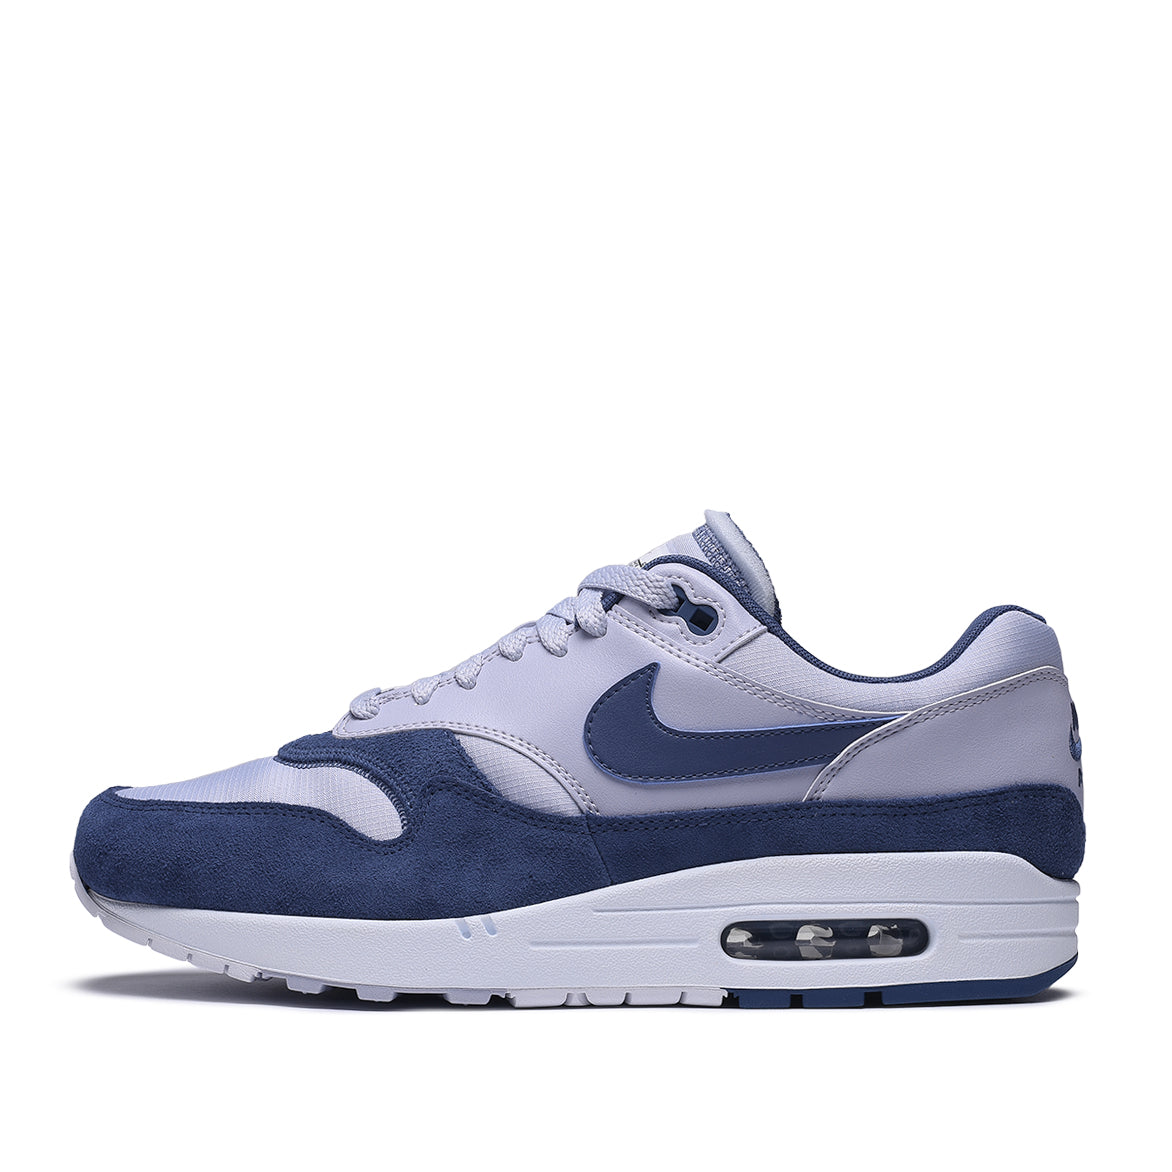 AIR MAX 1 GHOST MYSTIC NAVY WHITE